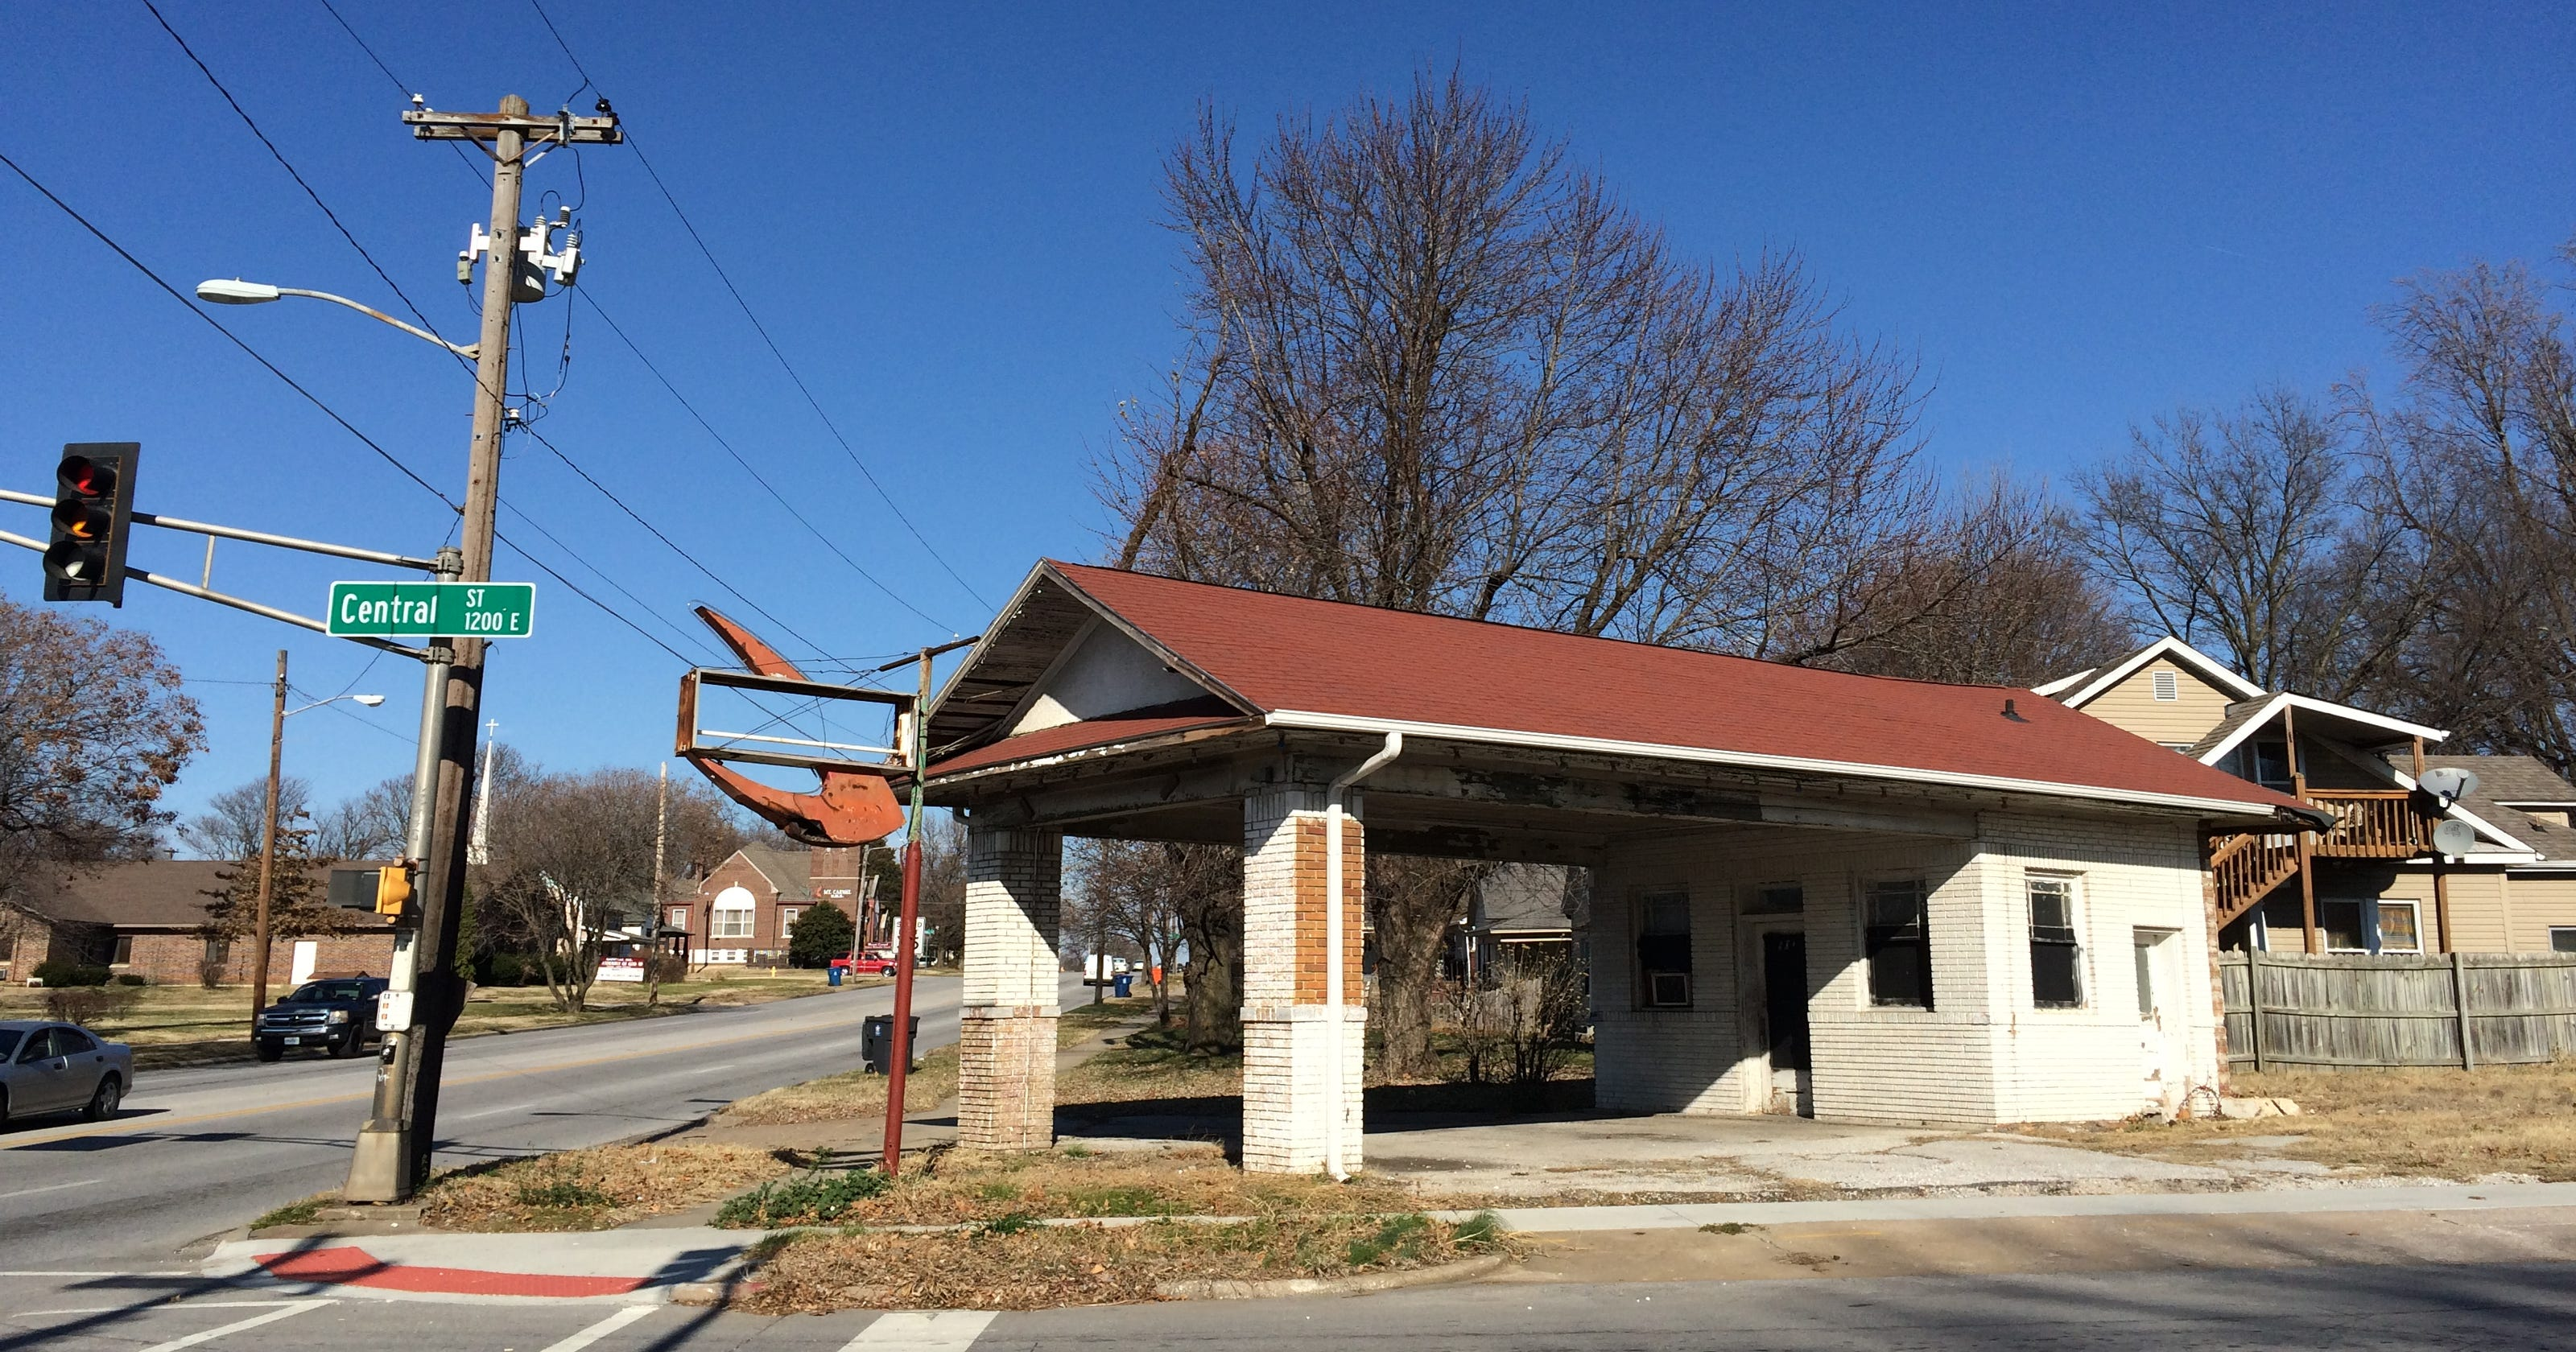 What's happening to that vintage gas station near OTC?